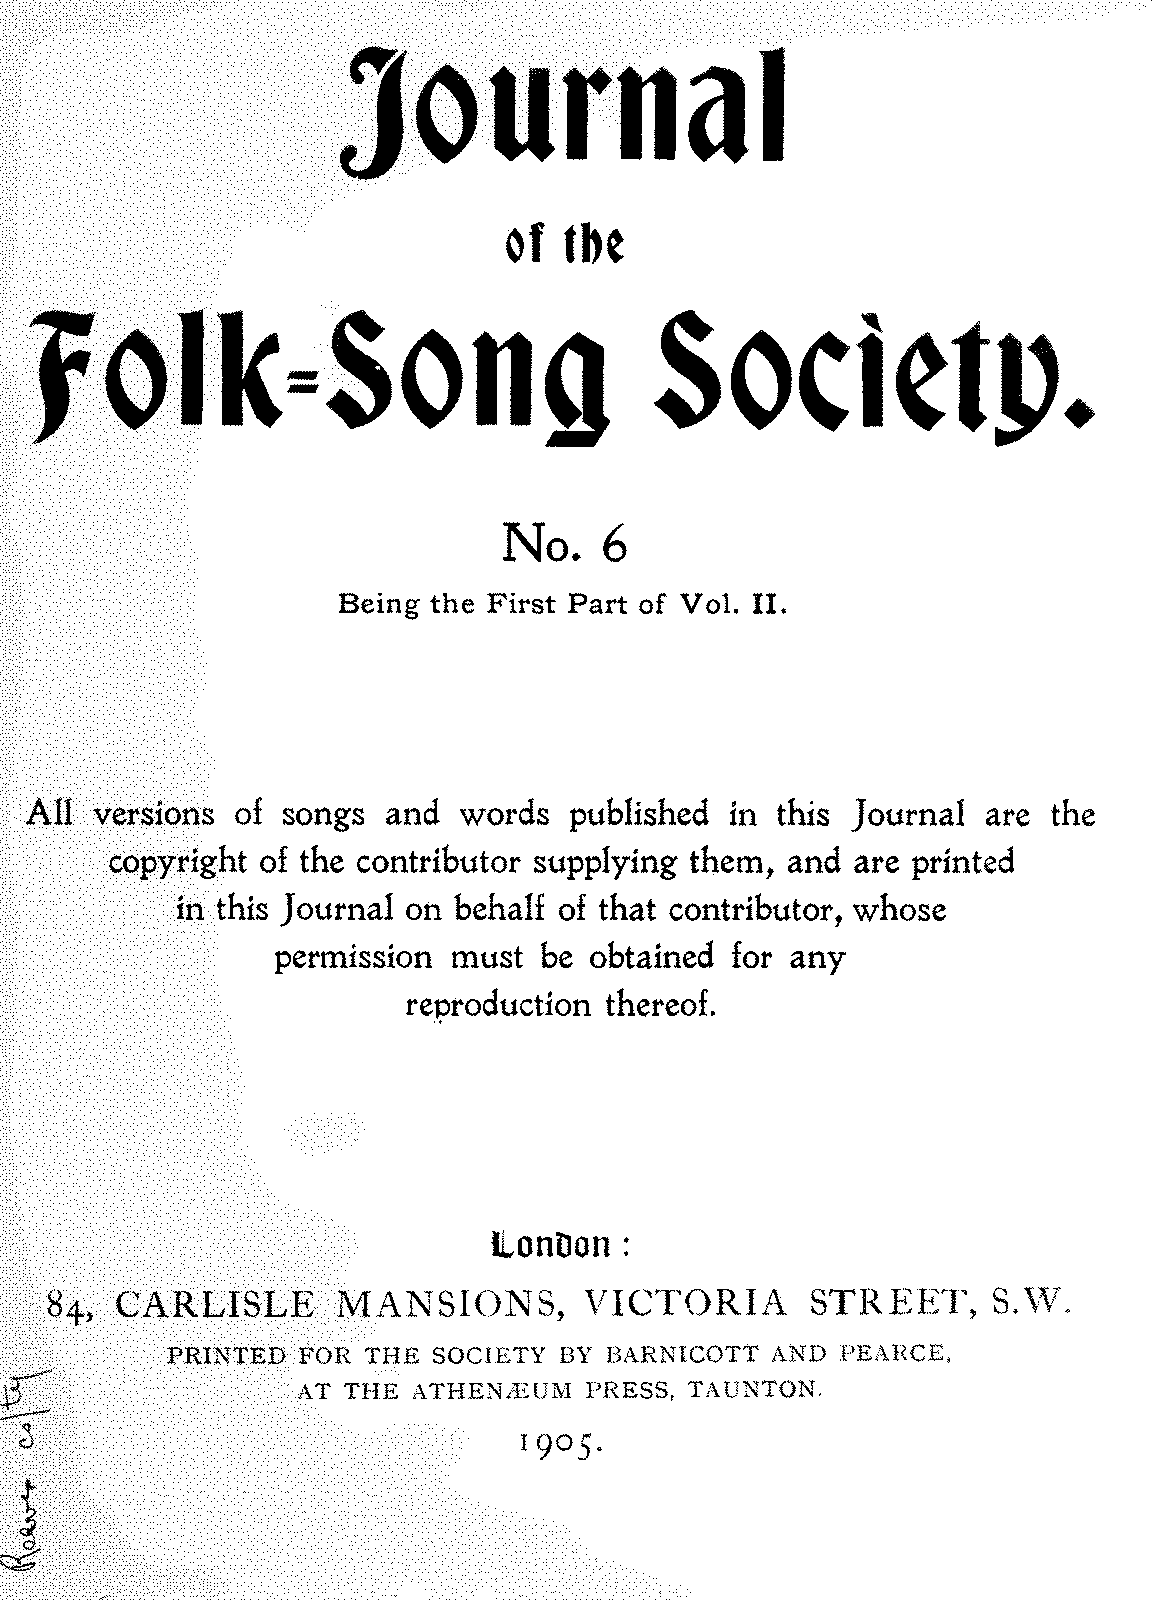 PMLP398620-journaloffolkson02folk JFSS vol2, 1905 No.6.pdf